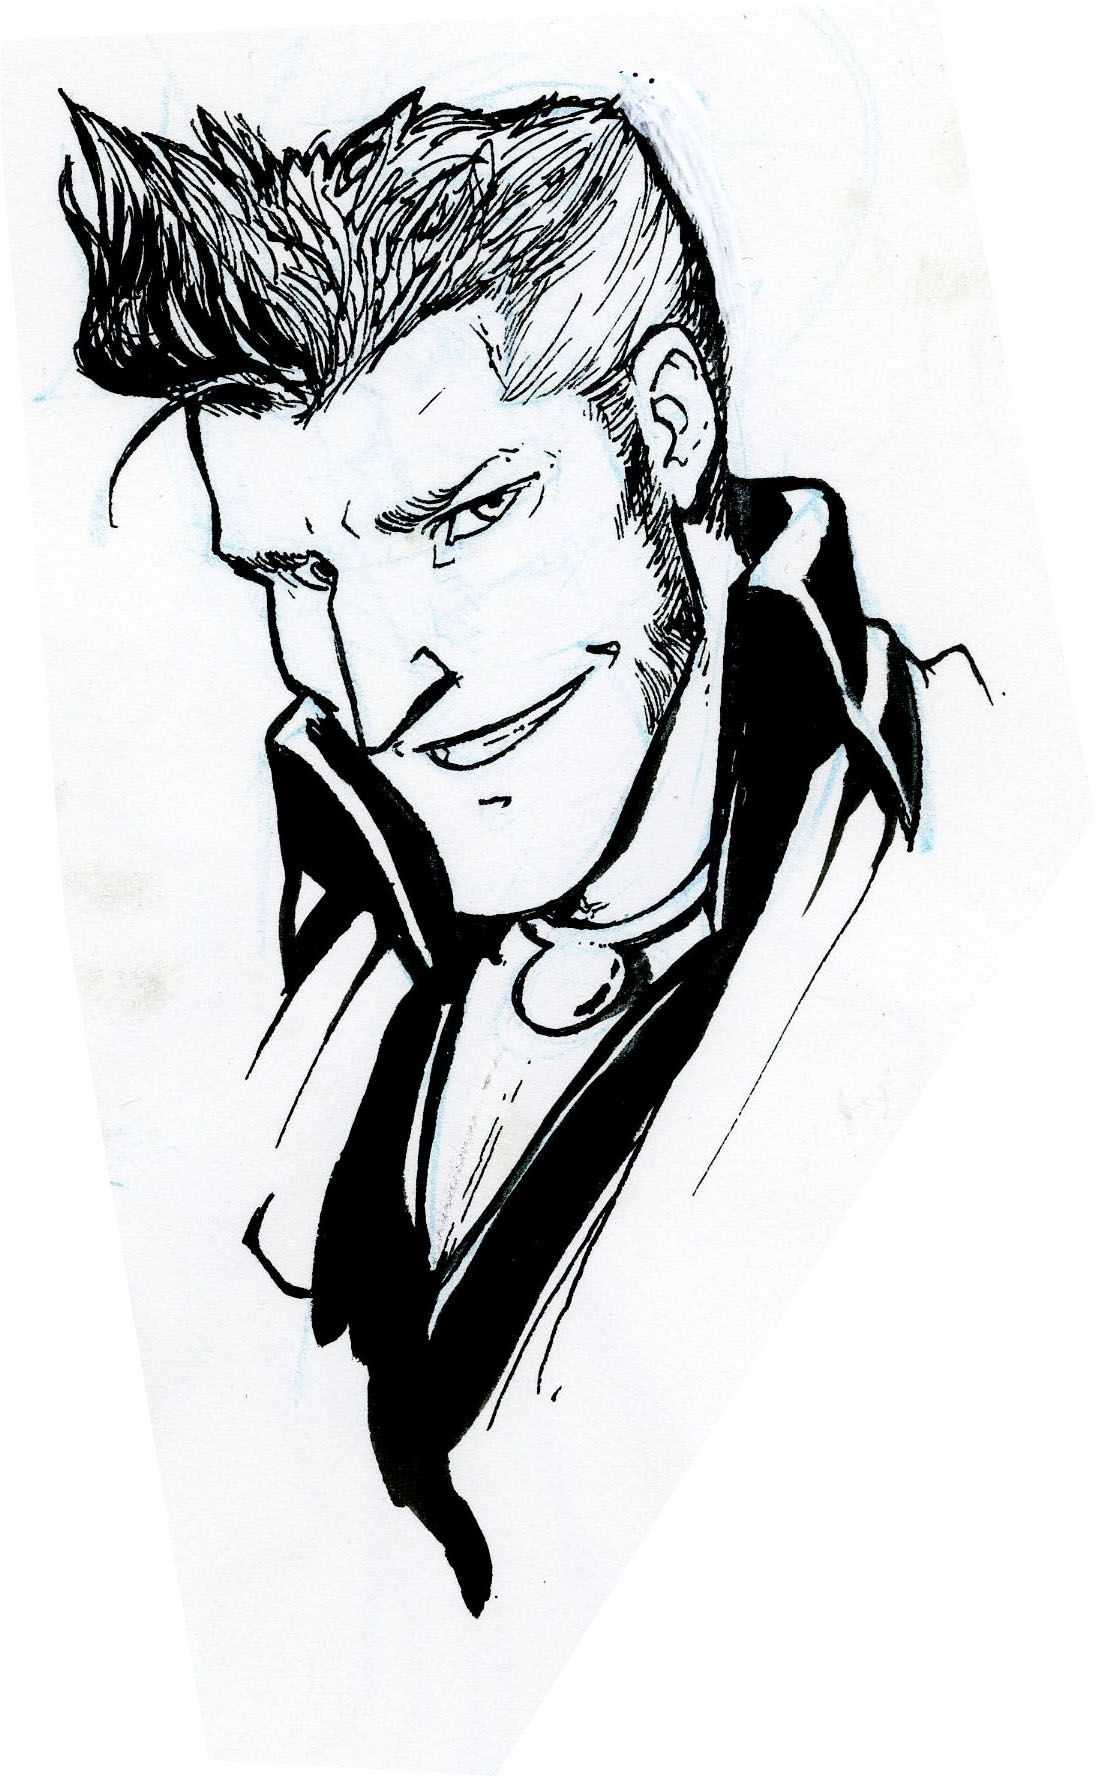 """tankens: """" inking warmup things, trying to draw the gt characters a bit more in my style since so far I've just been aping the in-game art. Jowd looks like Grissom from CSI. I don't know how to feel..."""